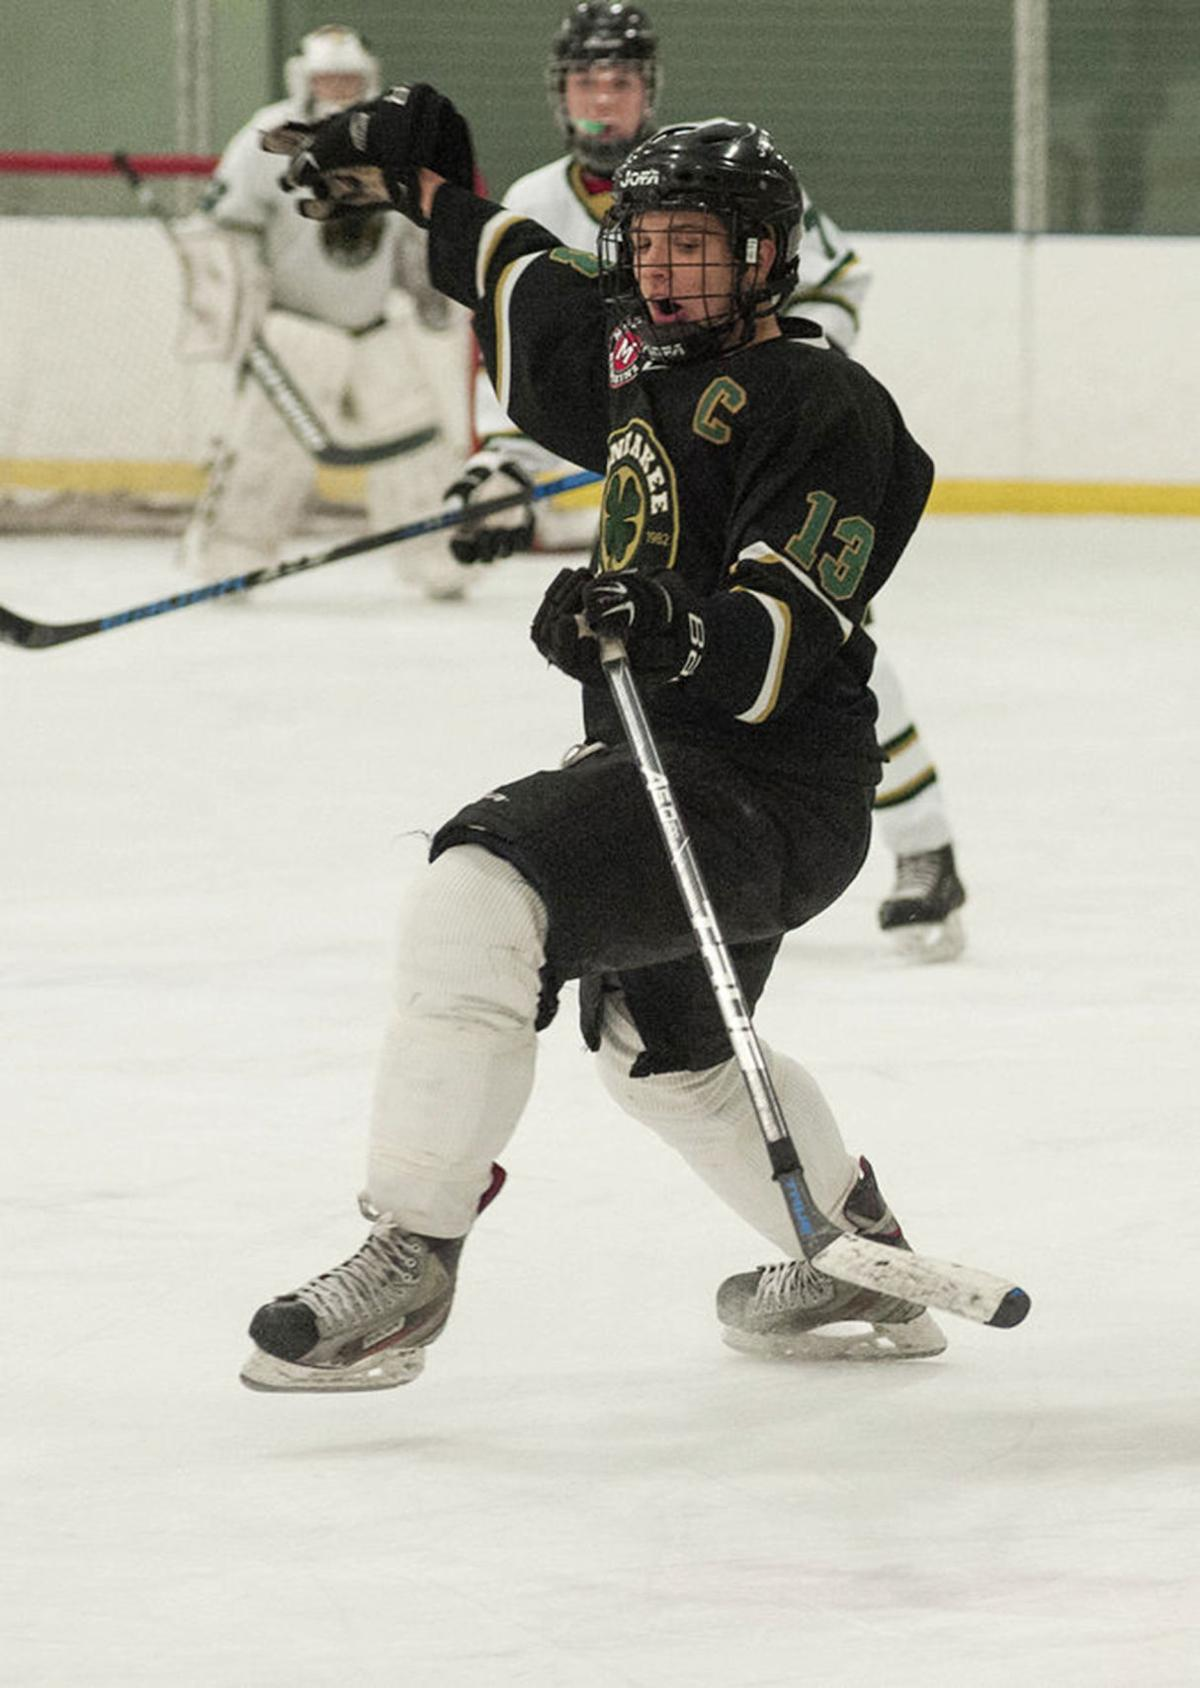 Local hockey player represents U.S. in Deaflympics